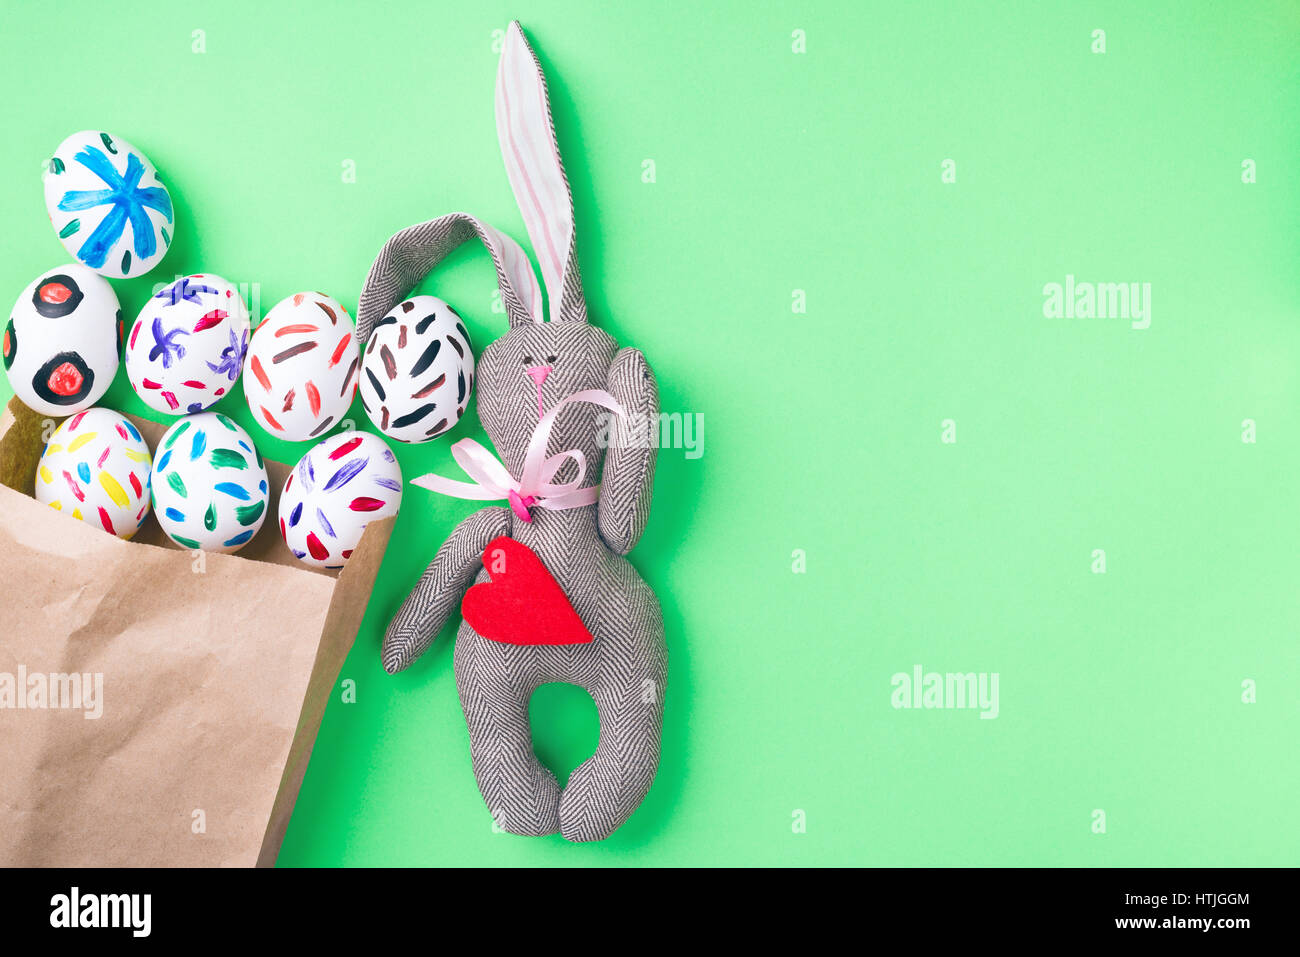 Easter eggs in a packet - Stock Image